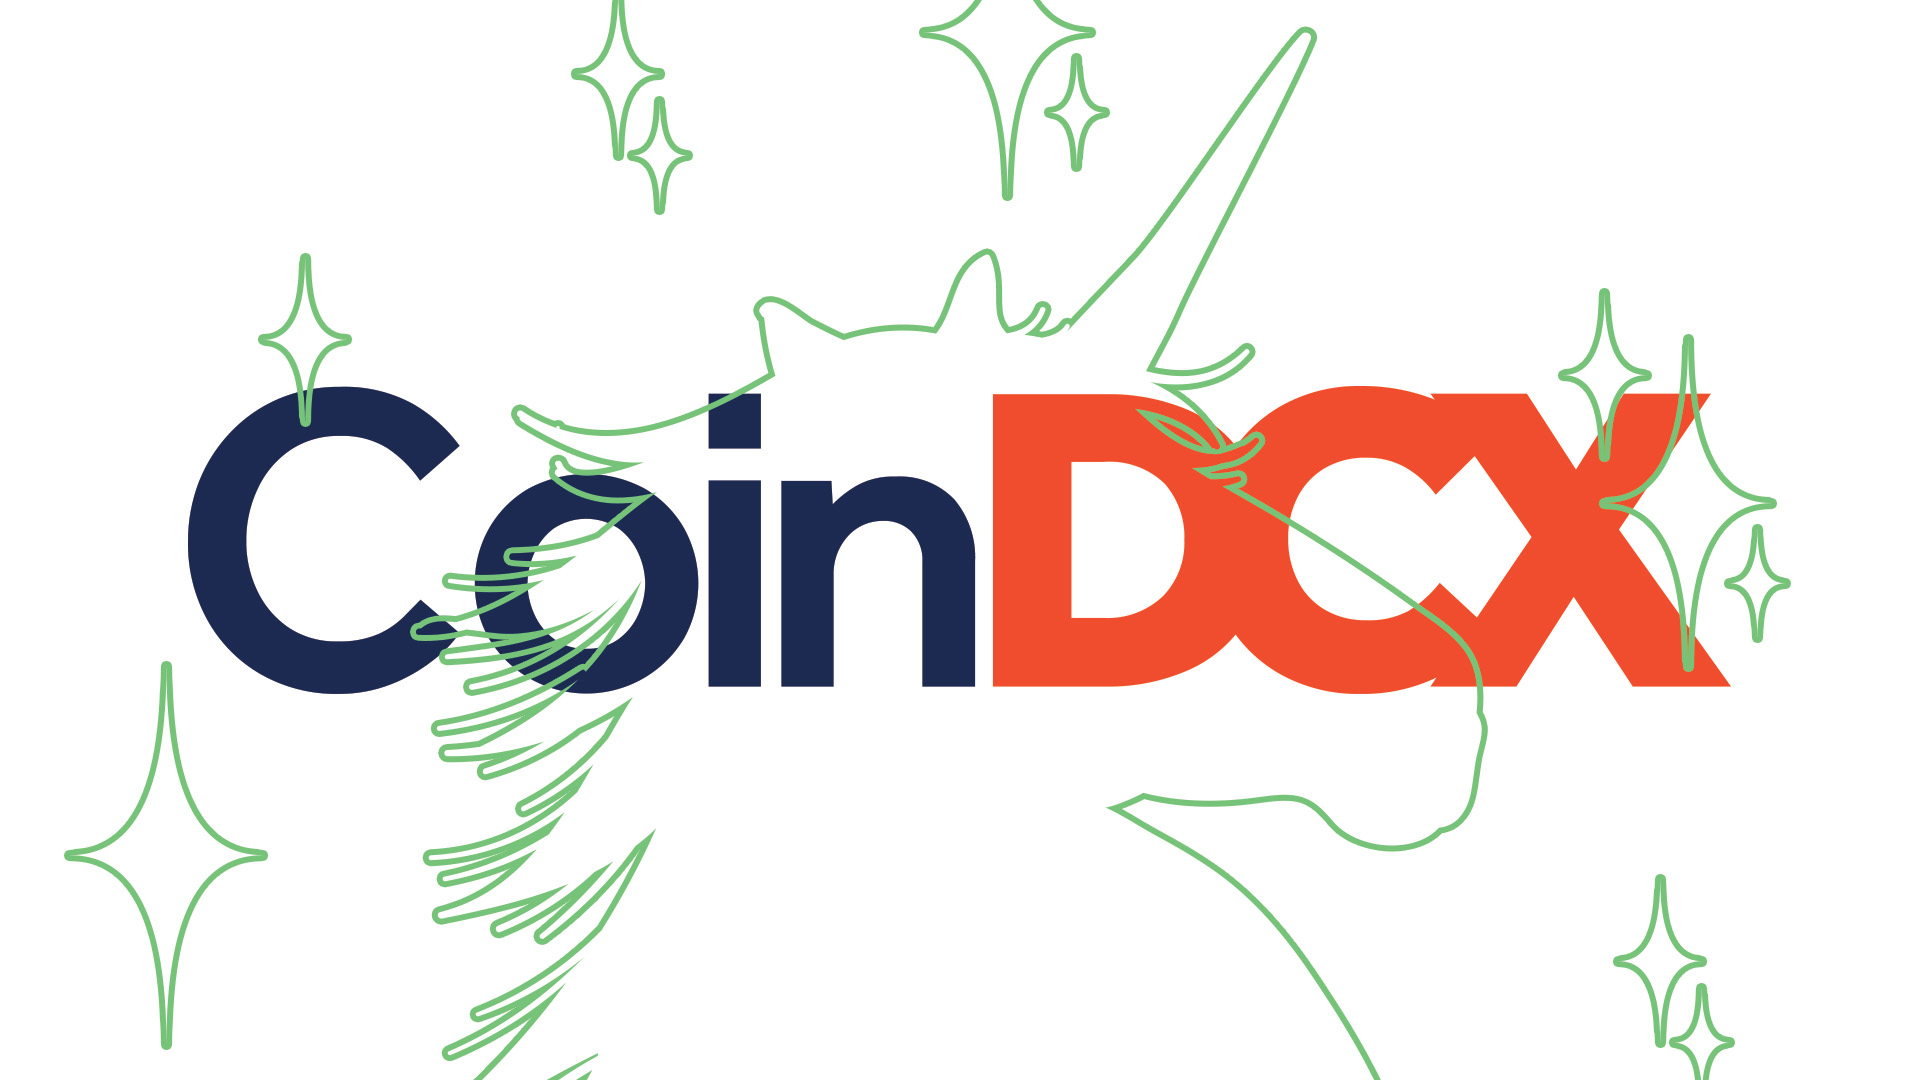 Indian crypto exchange CoinDCX becomes a unicorn with latest $90 million funding